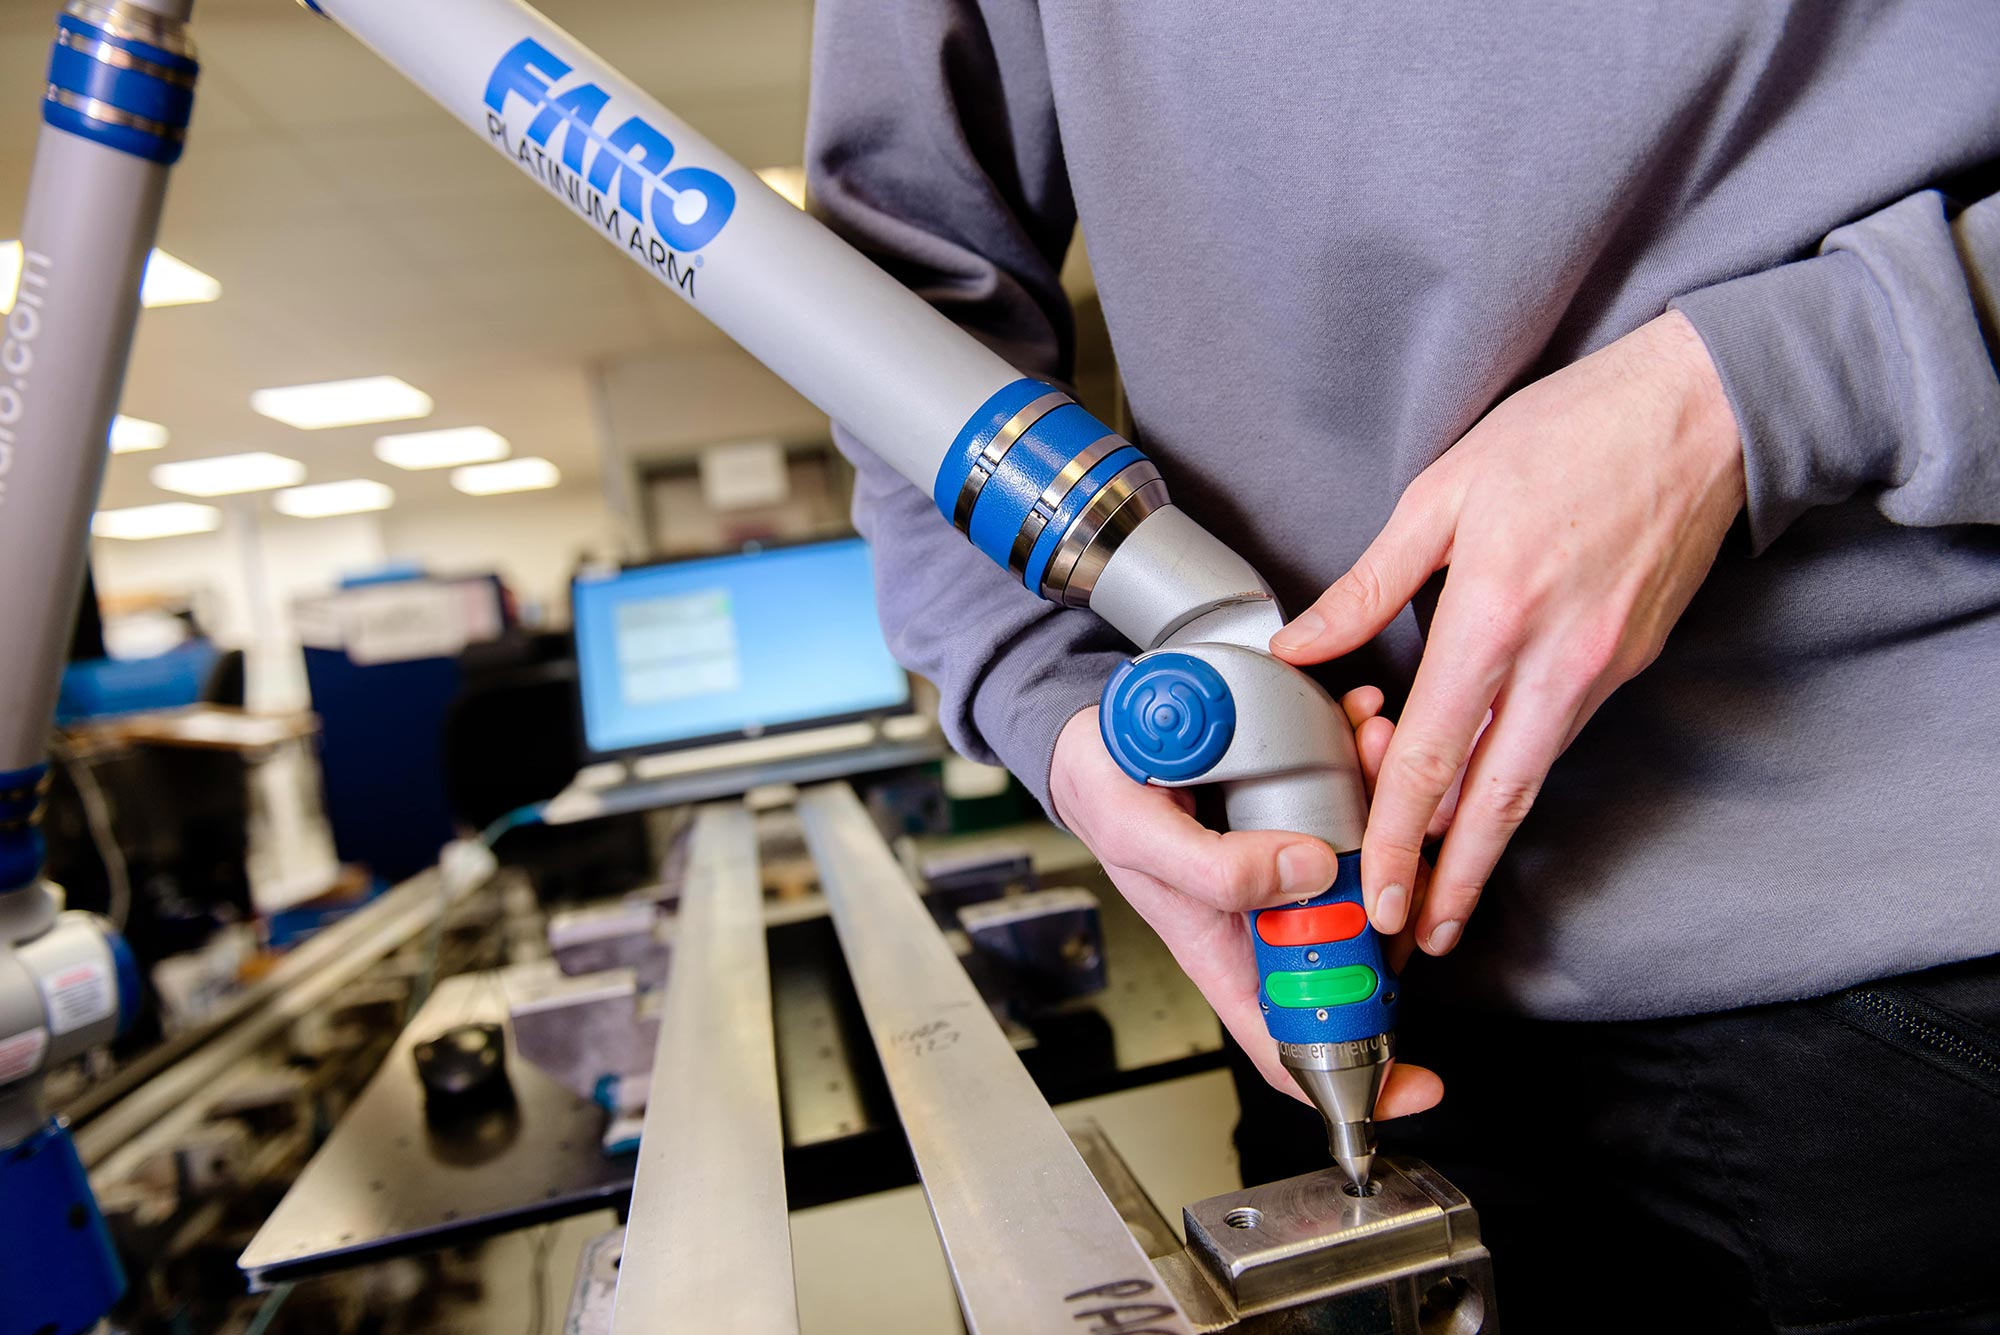 Faro Platinum Arm for component measurement